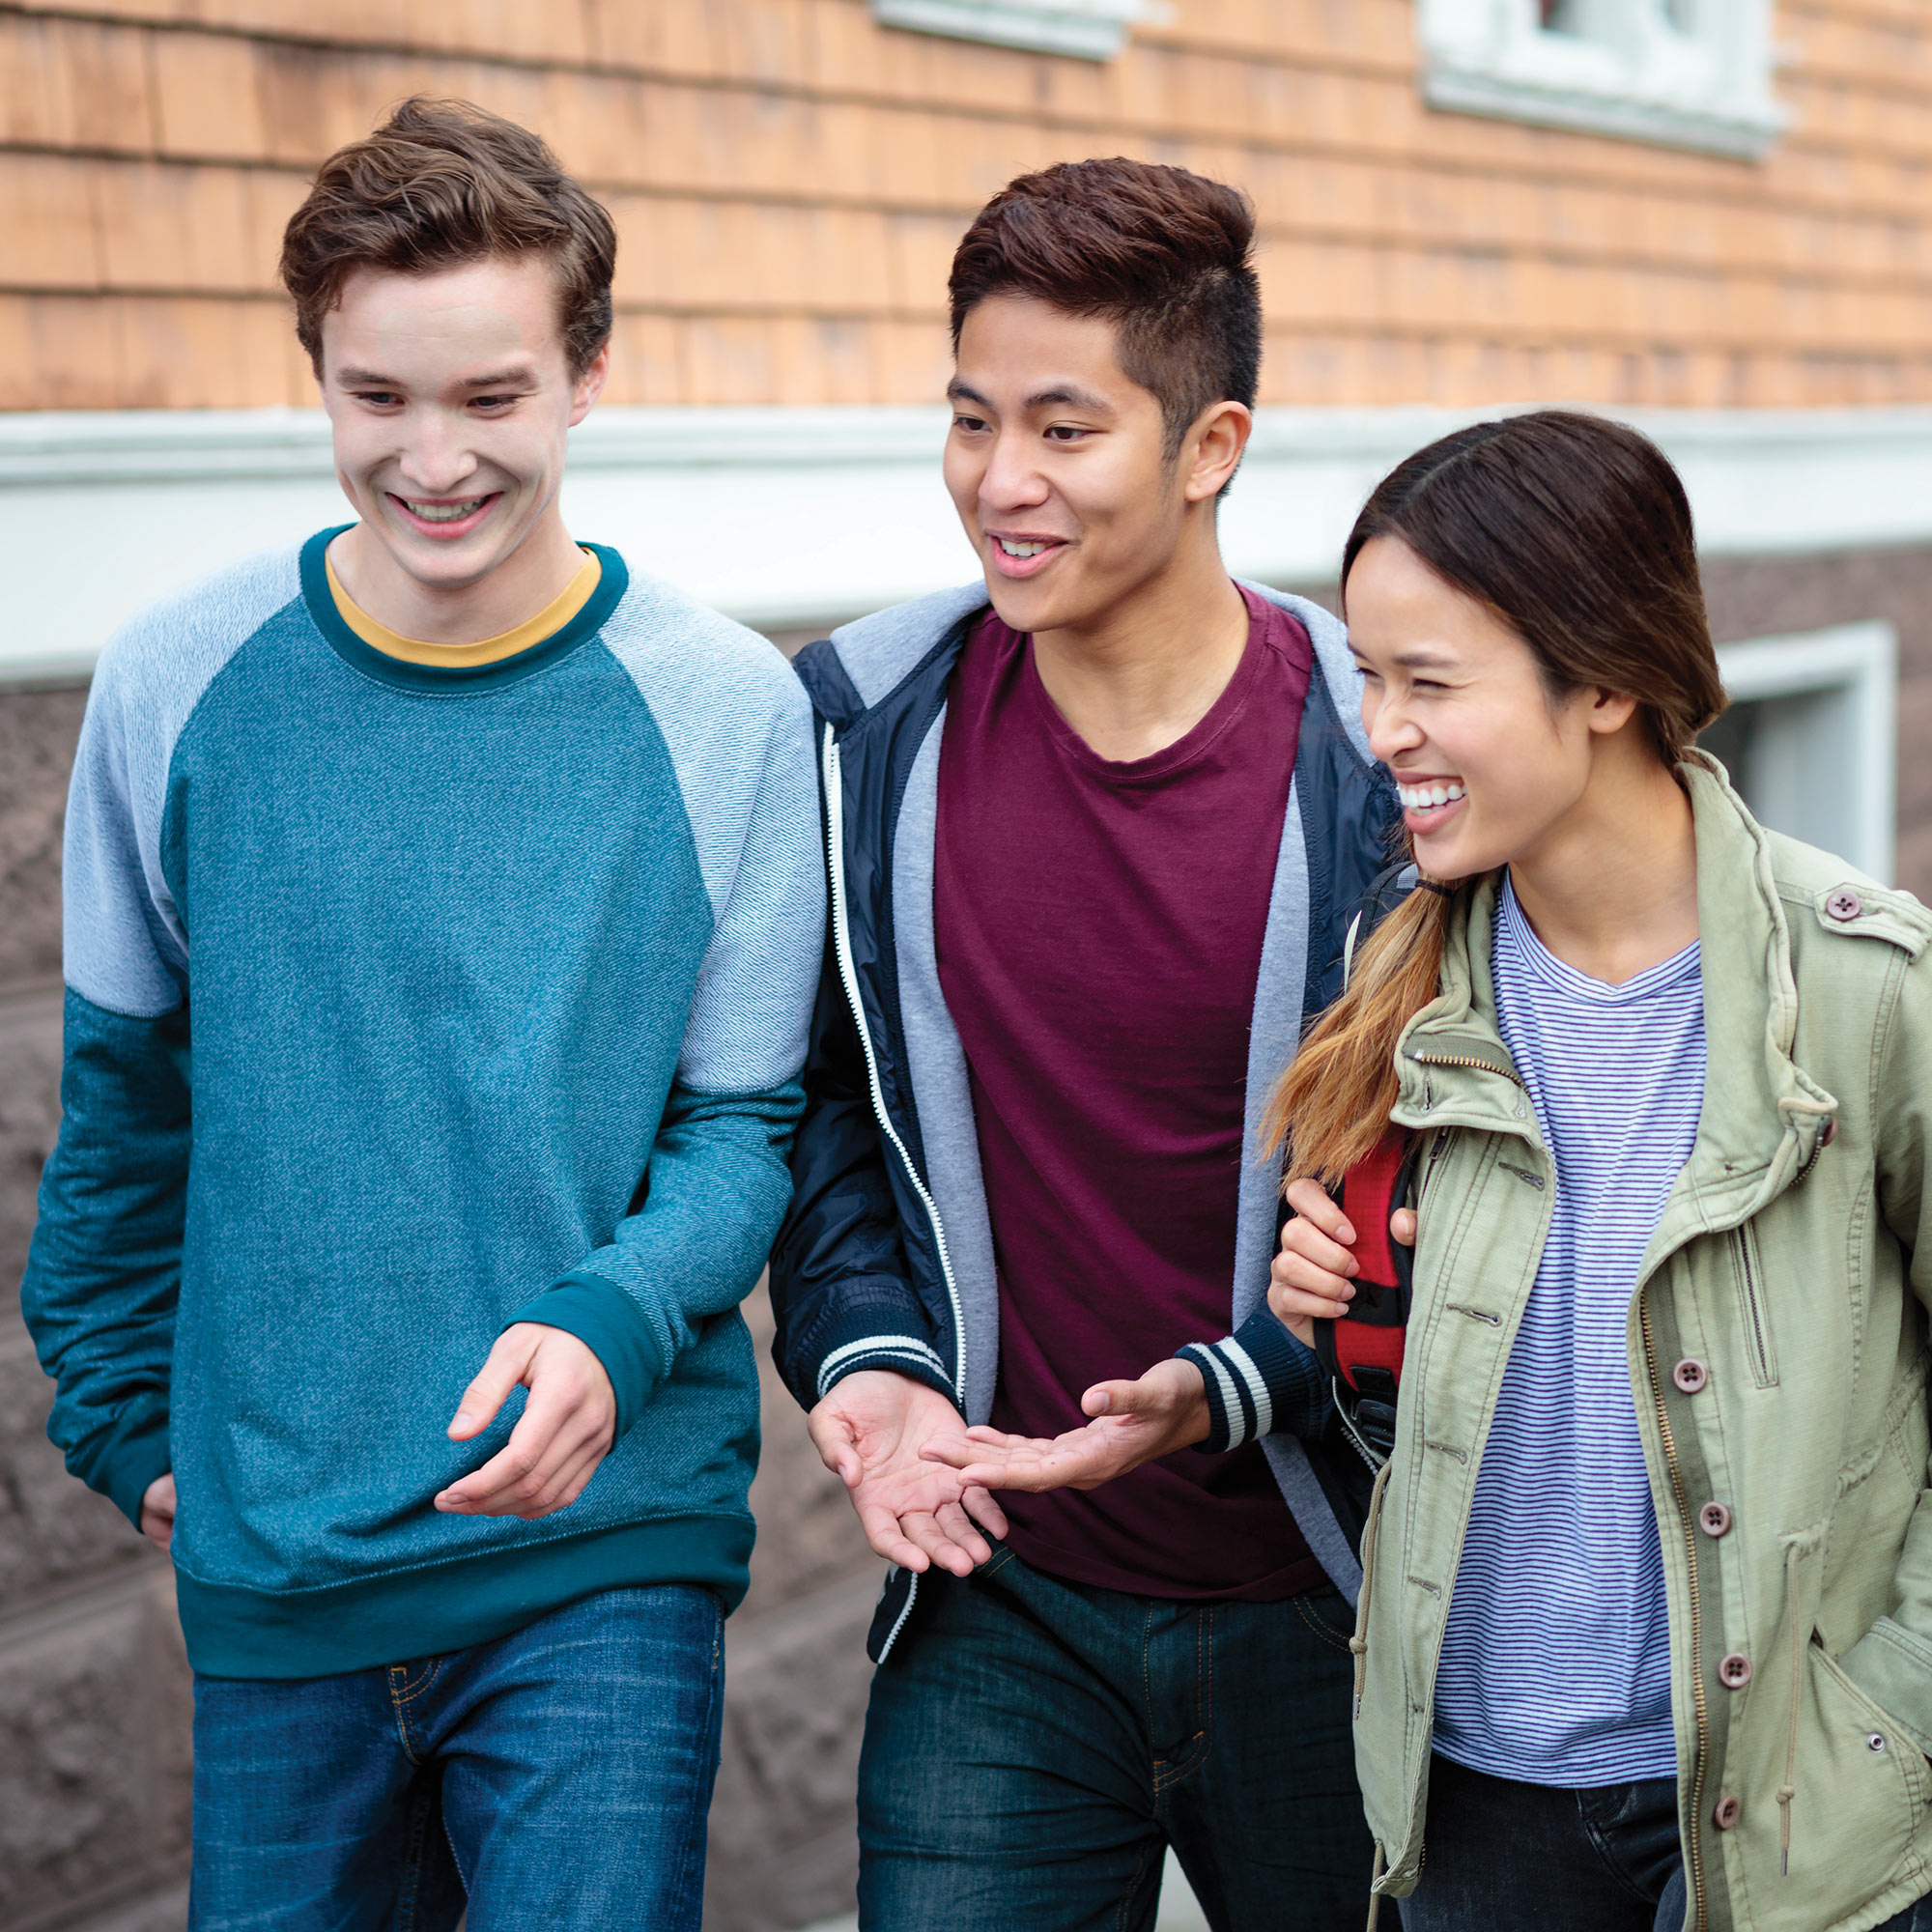 A group of young adults walking down a city sidewalk, talking and smiling.